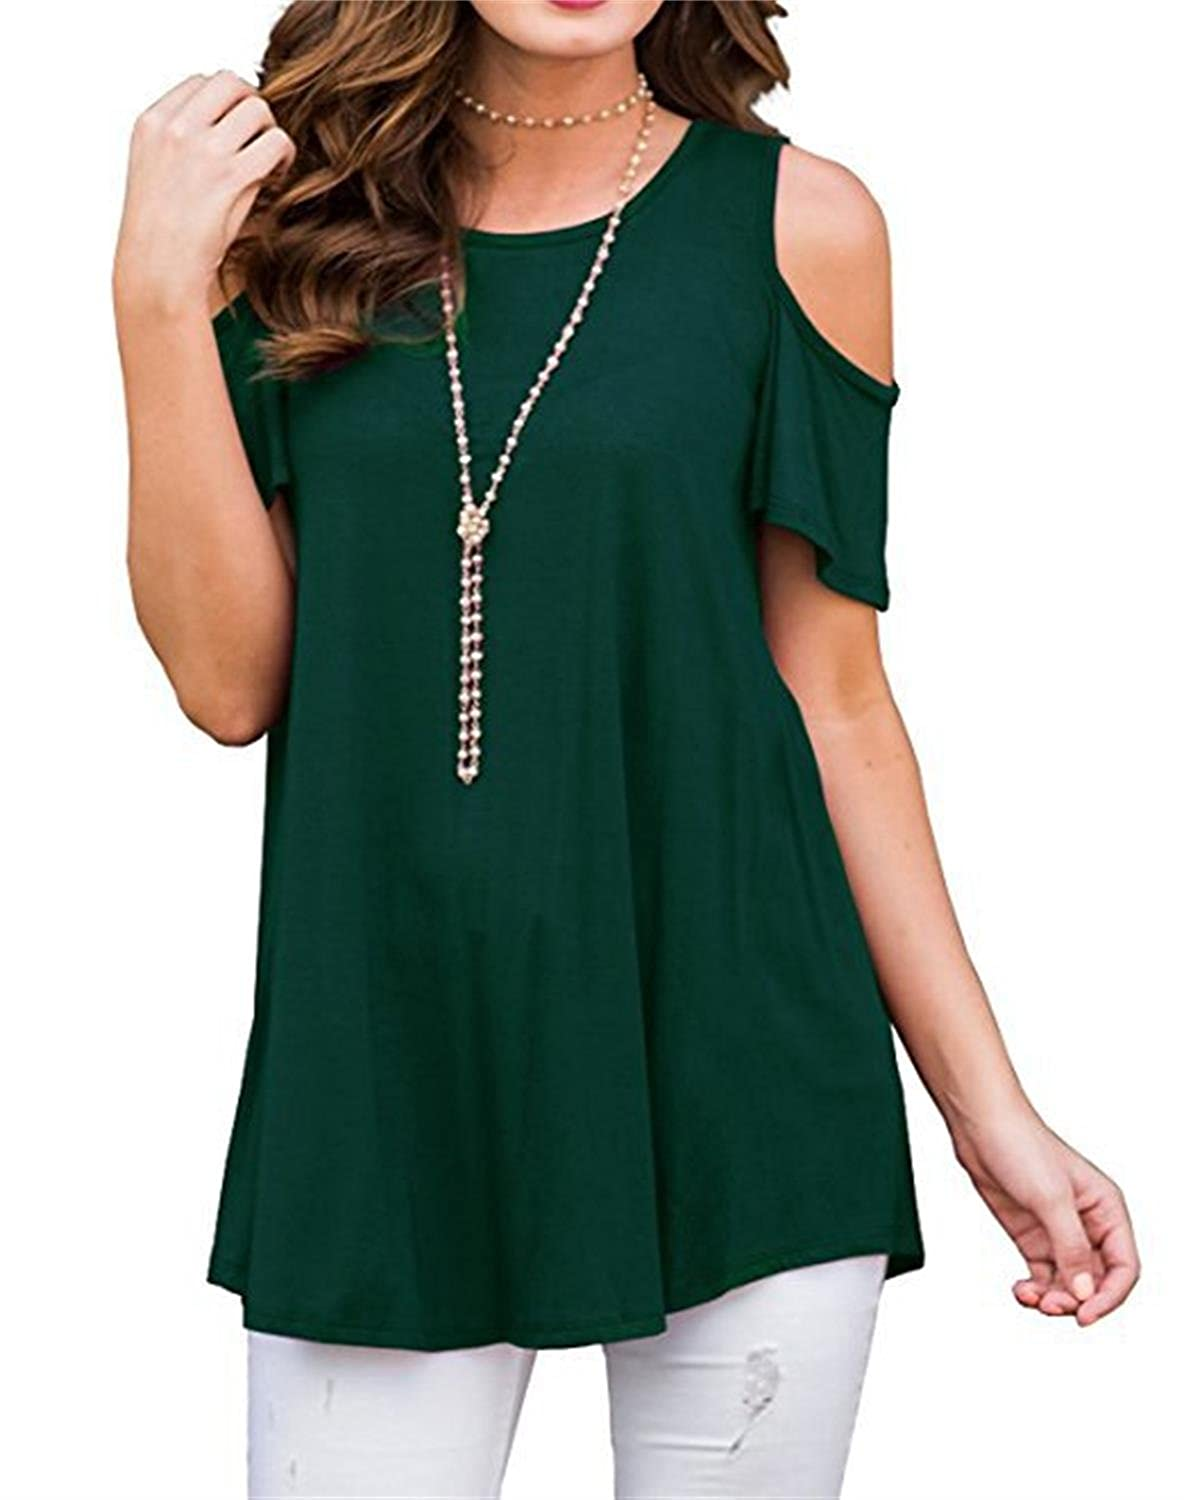 NELIUYA Women's Short Sleeve Casual Cold Shoulder Tunic Tops Loose Blouse Shirts